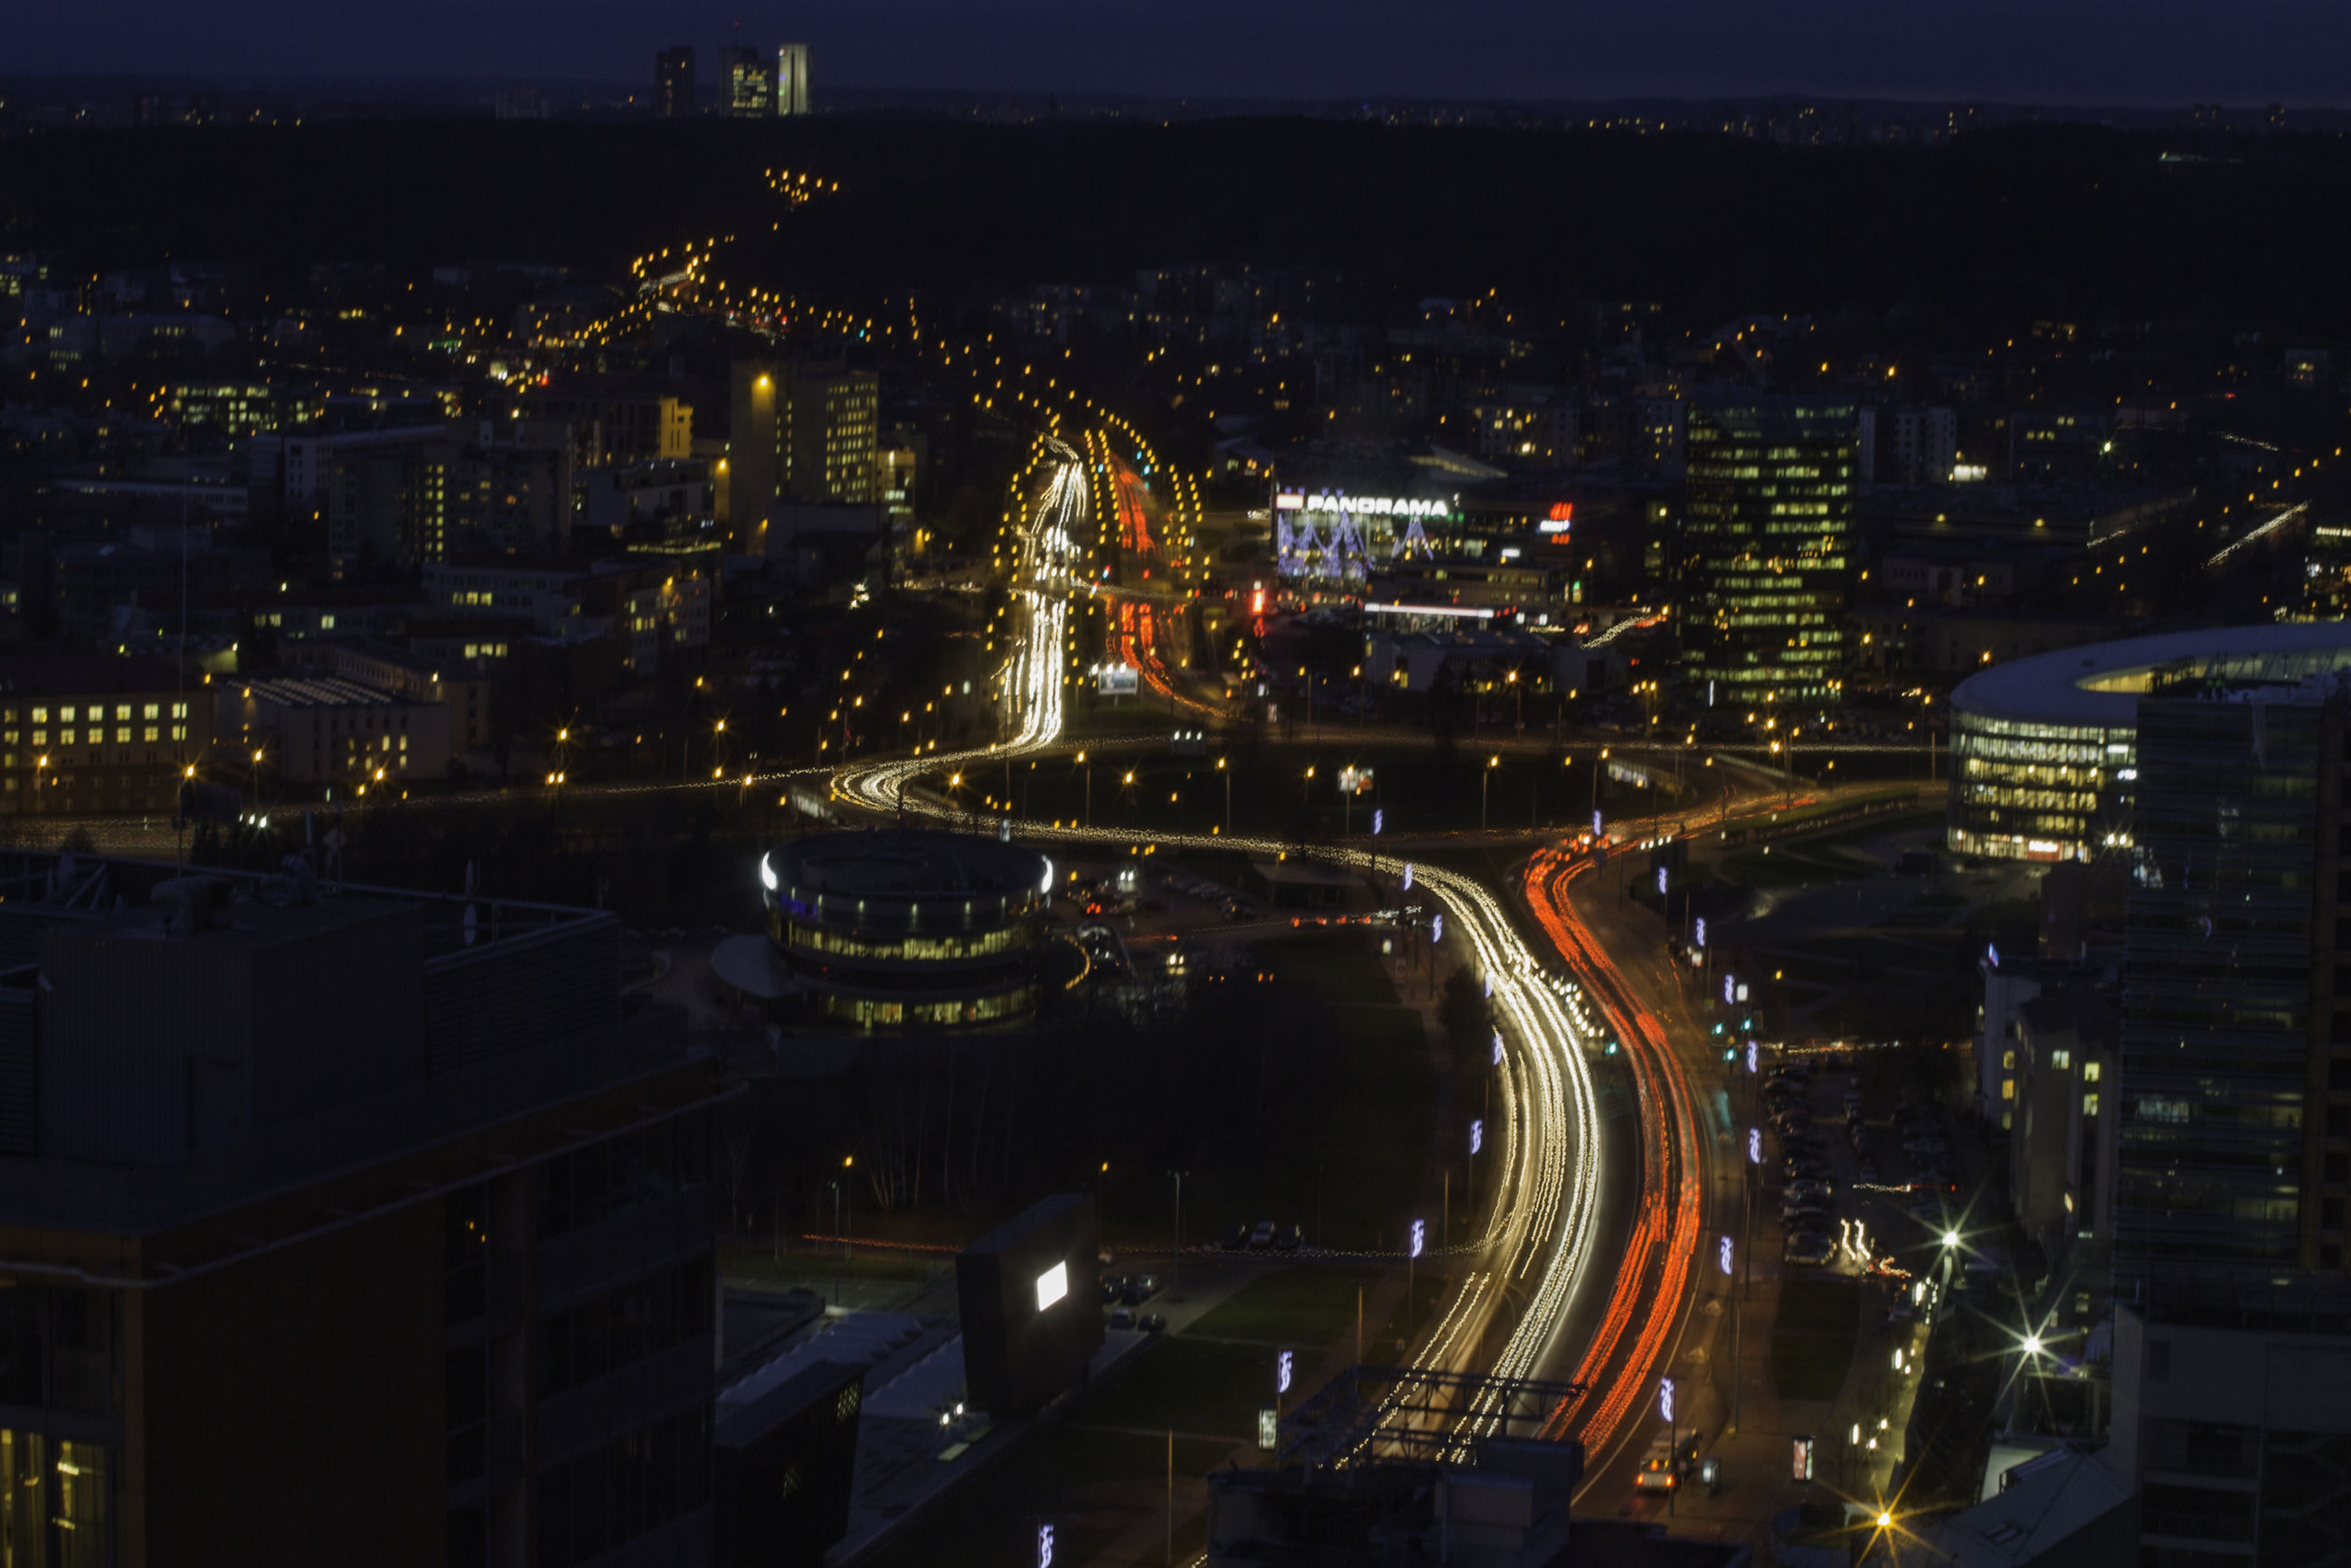 illuminated, city, night, building exterior, cityscape, architecture, built structure, high angle view, skyscraper, crowded, city life, modern, office building, aerial view, residential district, tall - high, tower, residential building, capital cities, outdoors